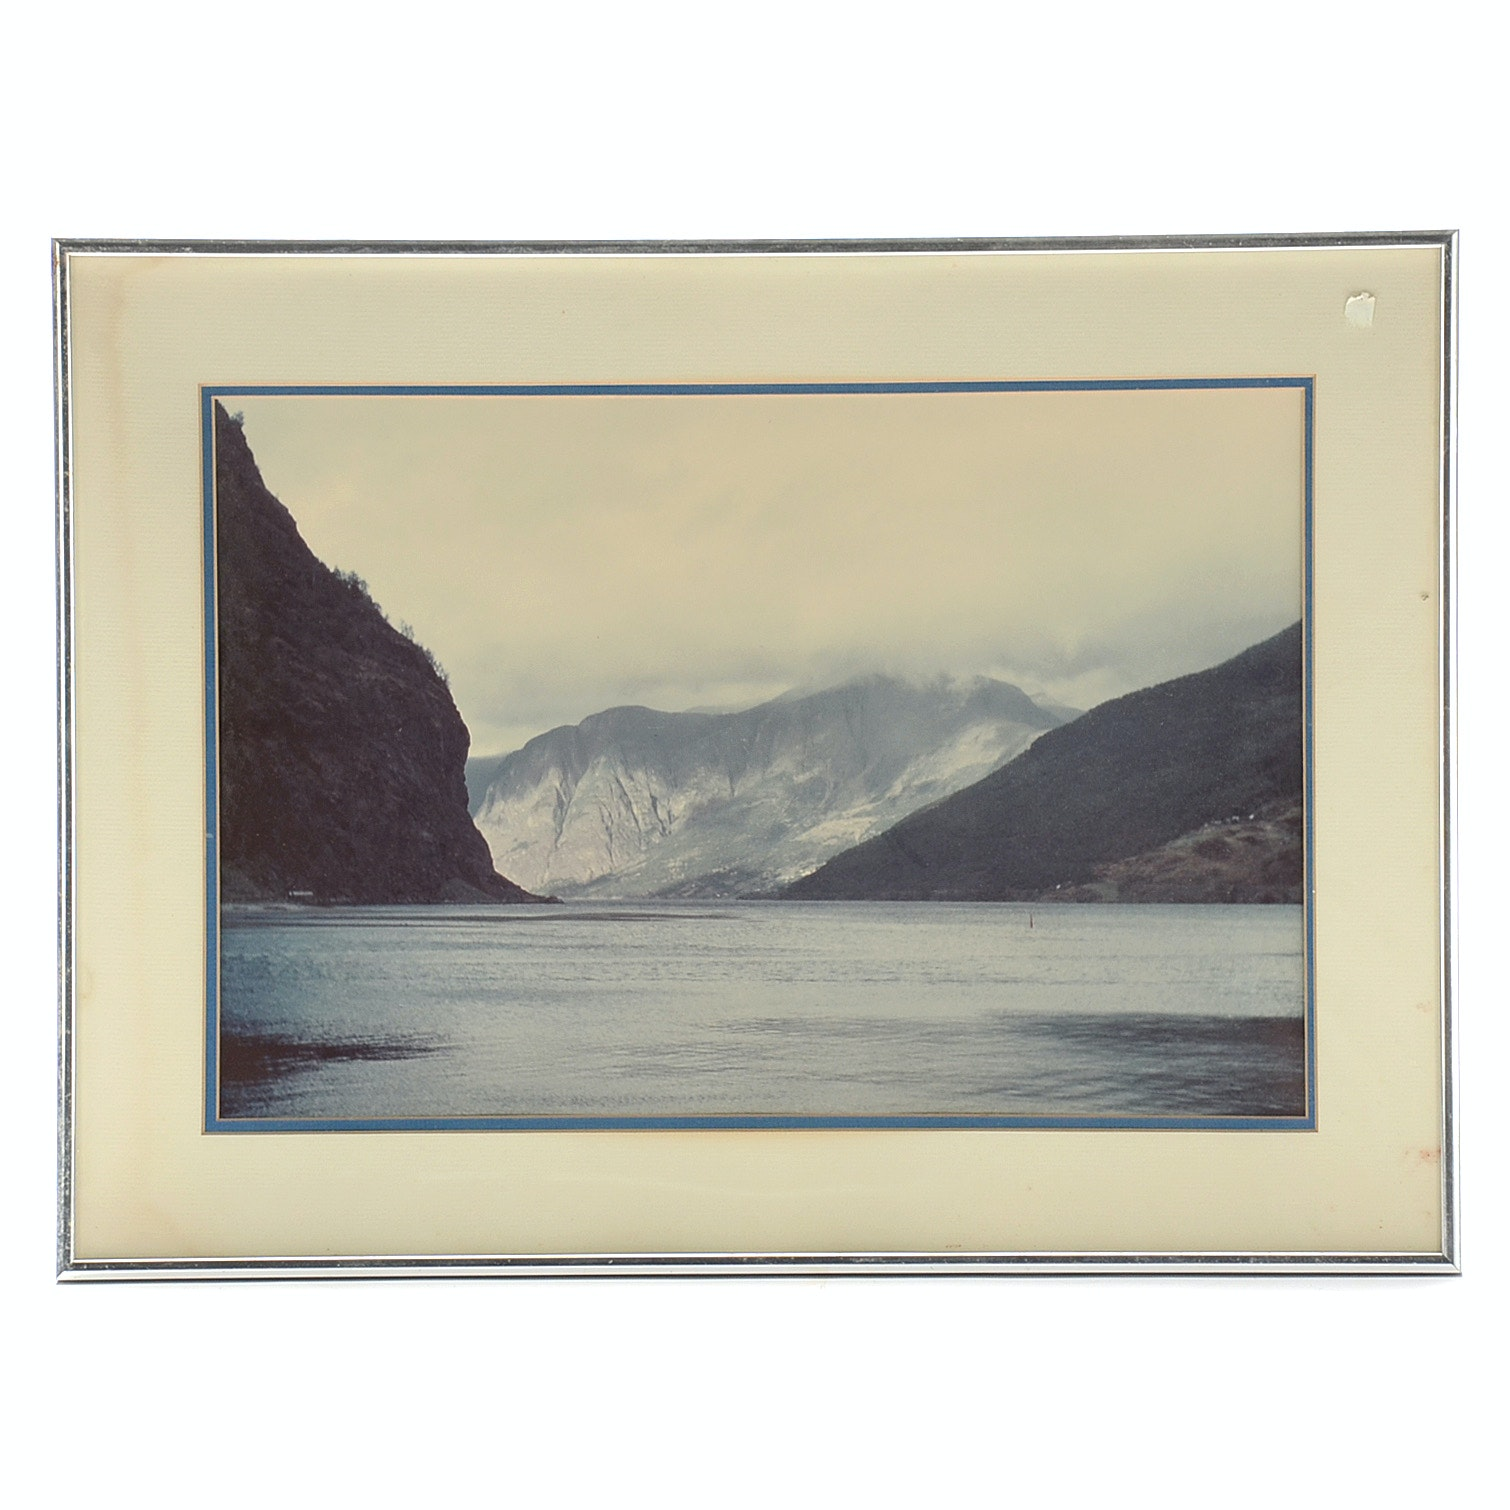 Framed Photo of Mountains and Water